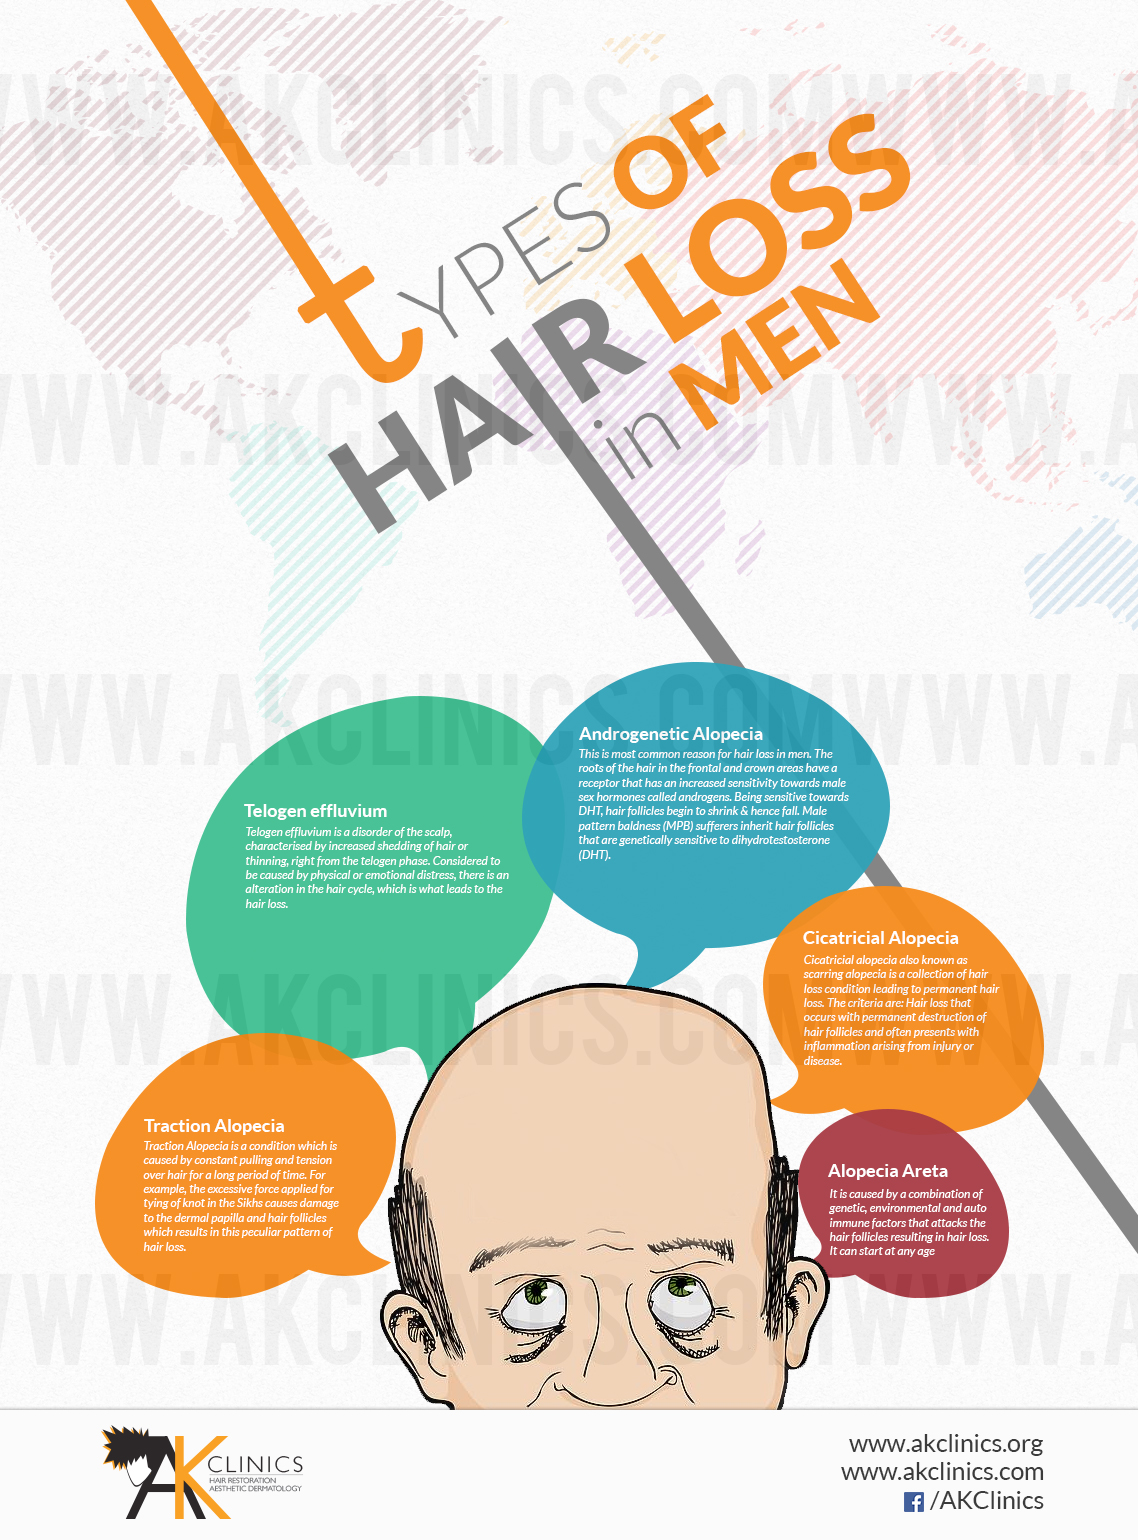 Types of Hair Loss in Men Infographic